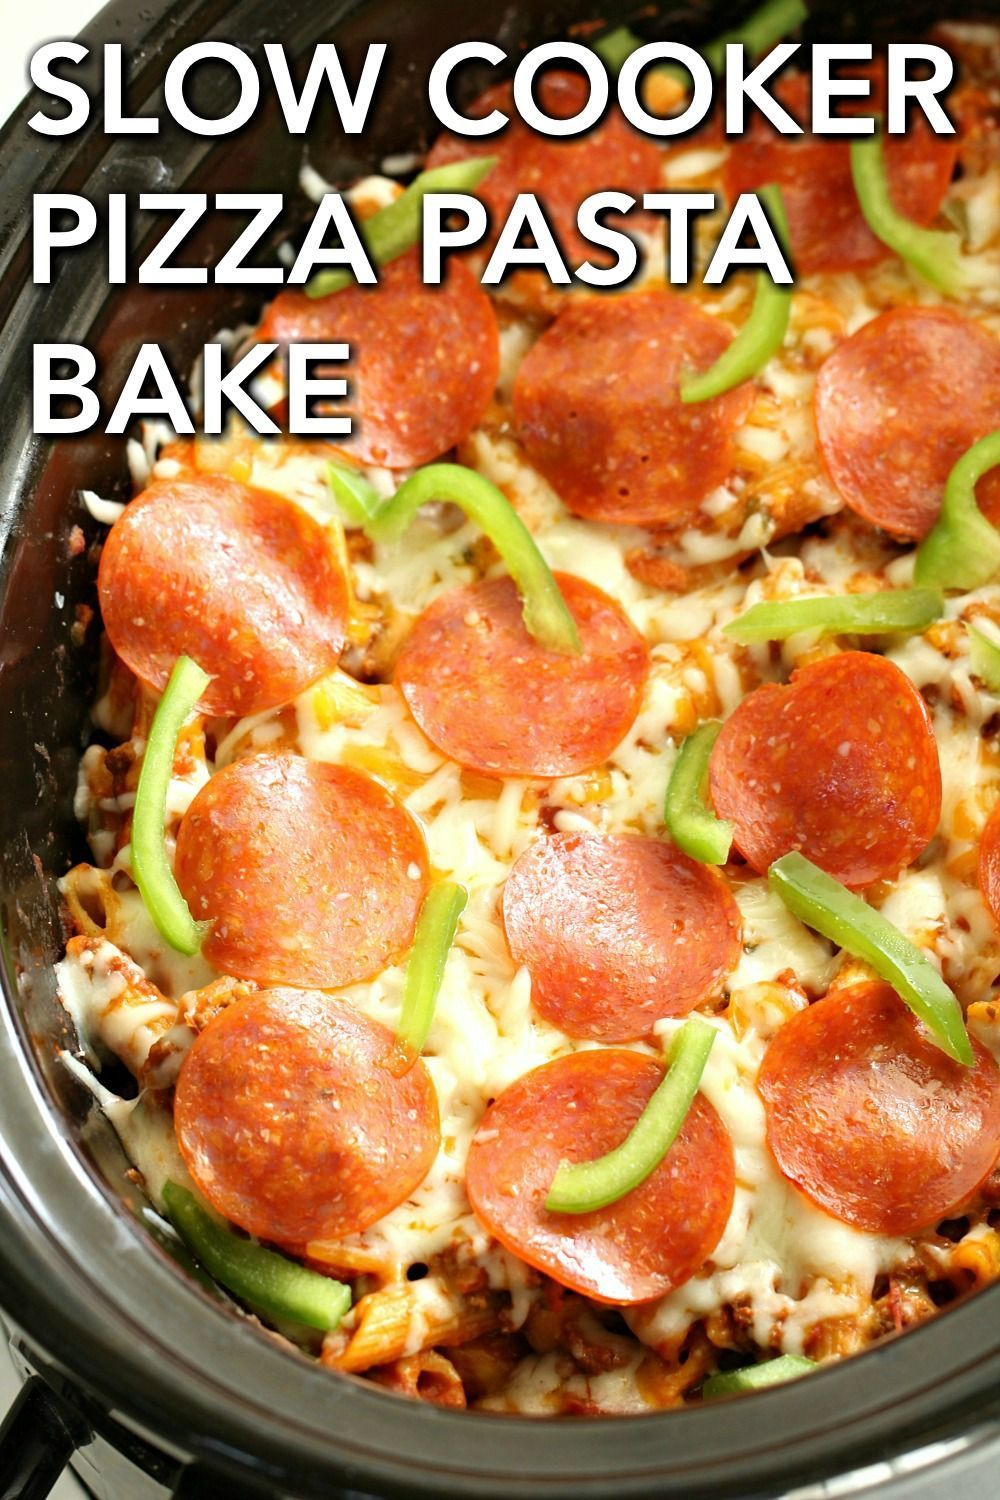 Slow Cooker Pizza Bake Recipe (Freezer Meal)